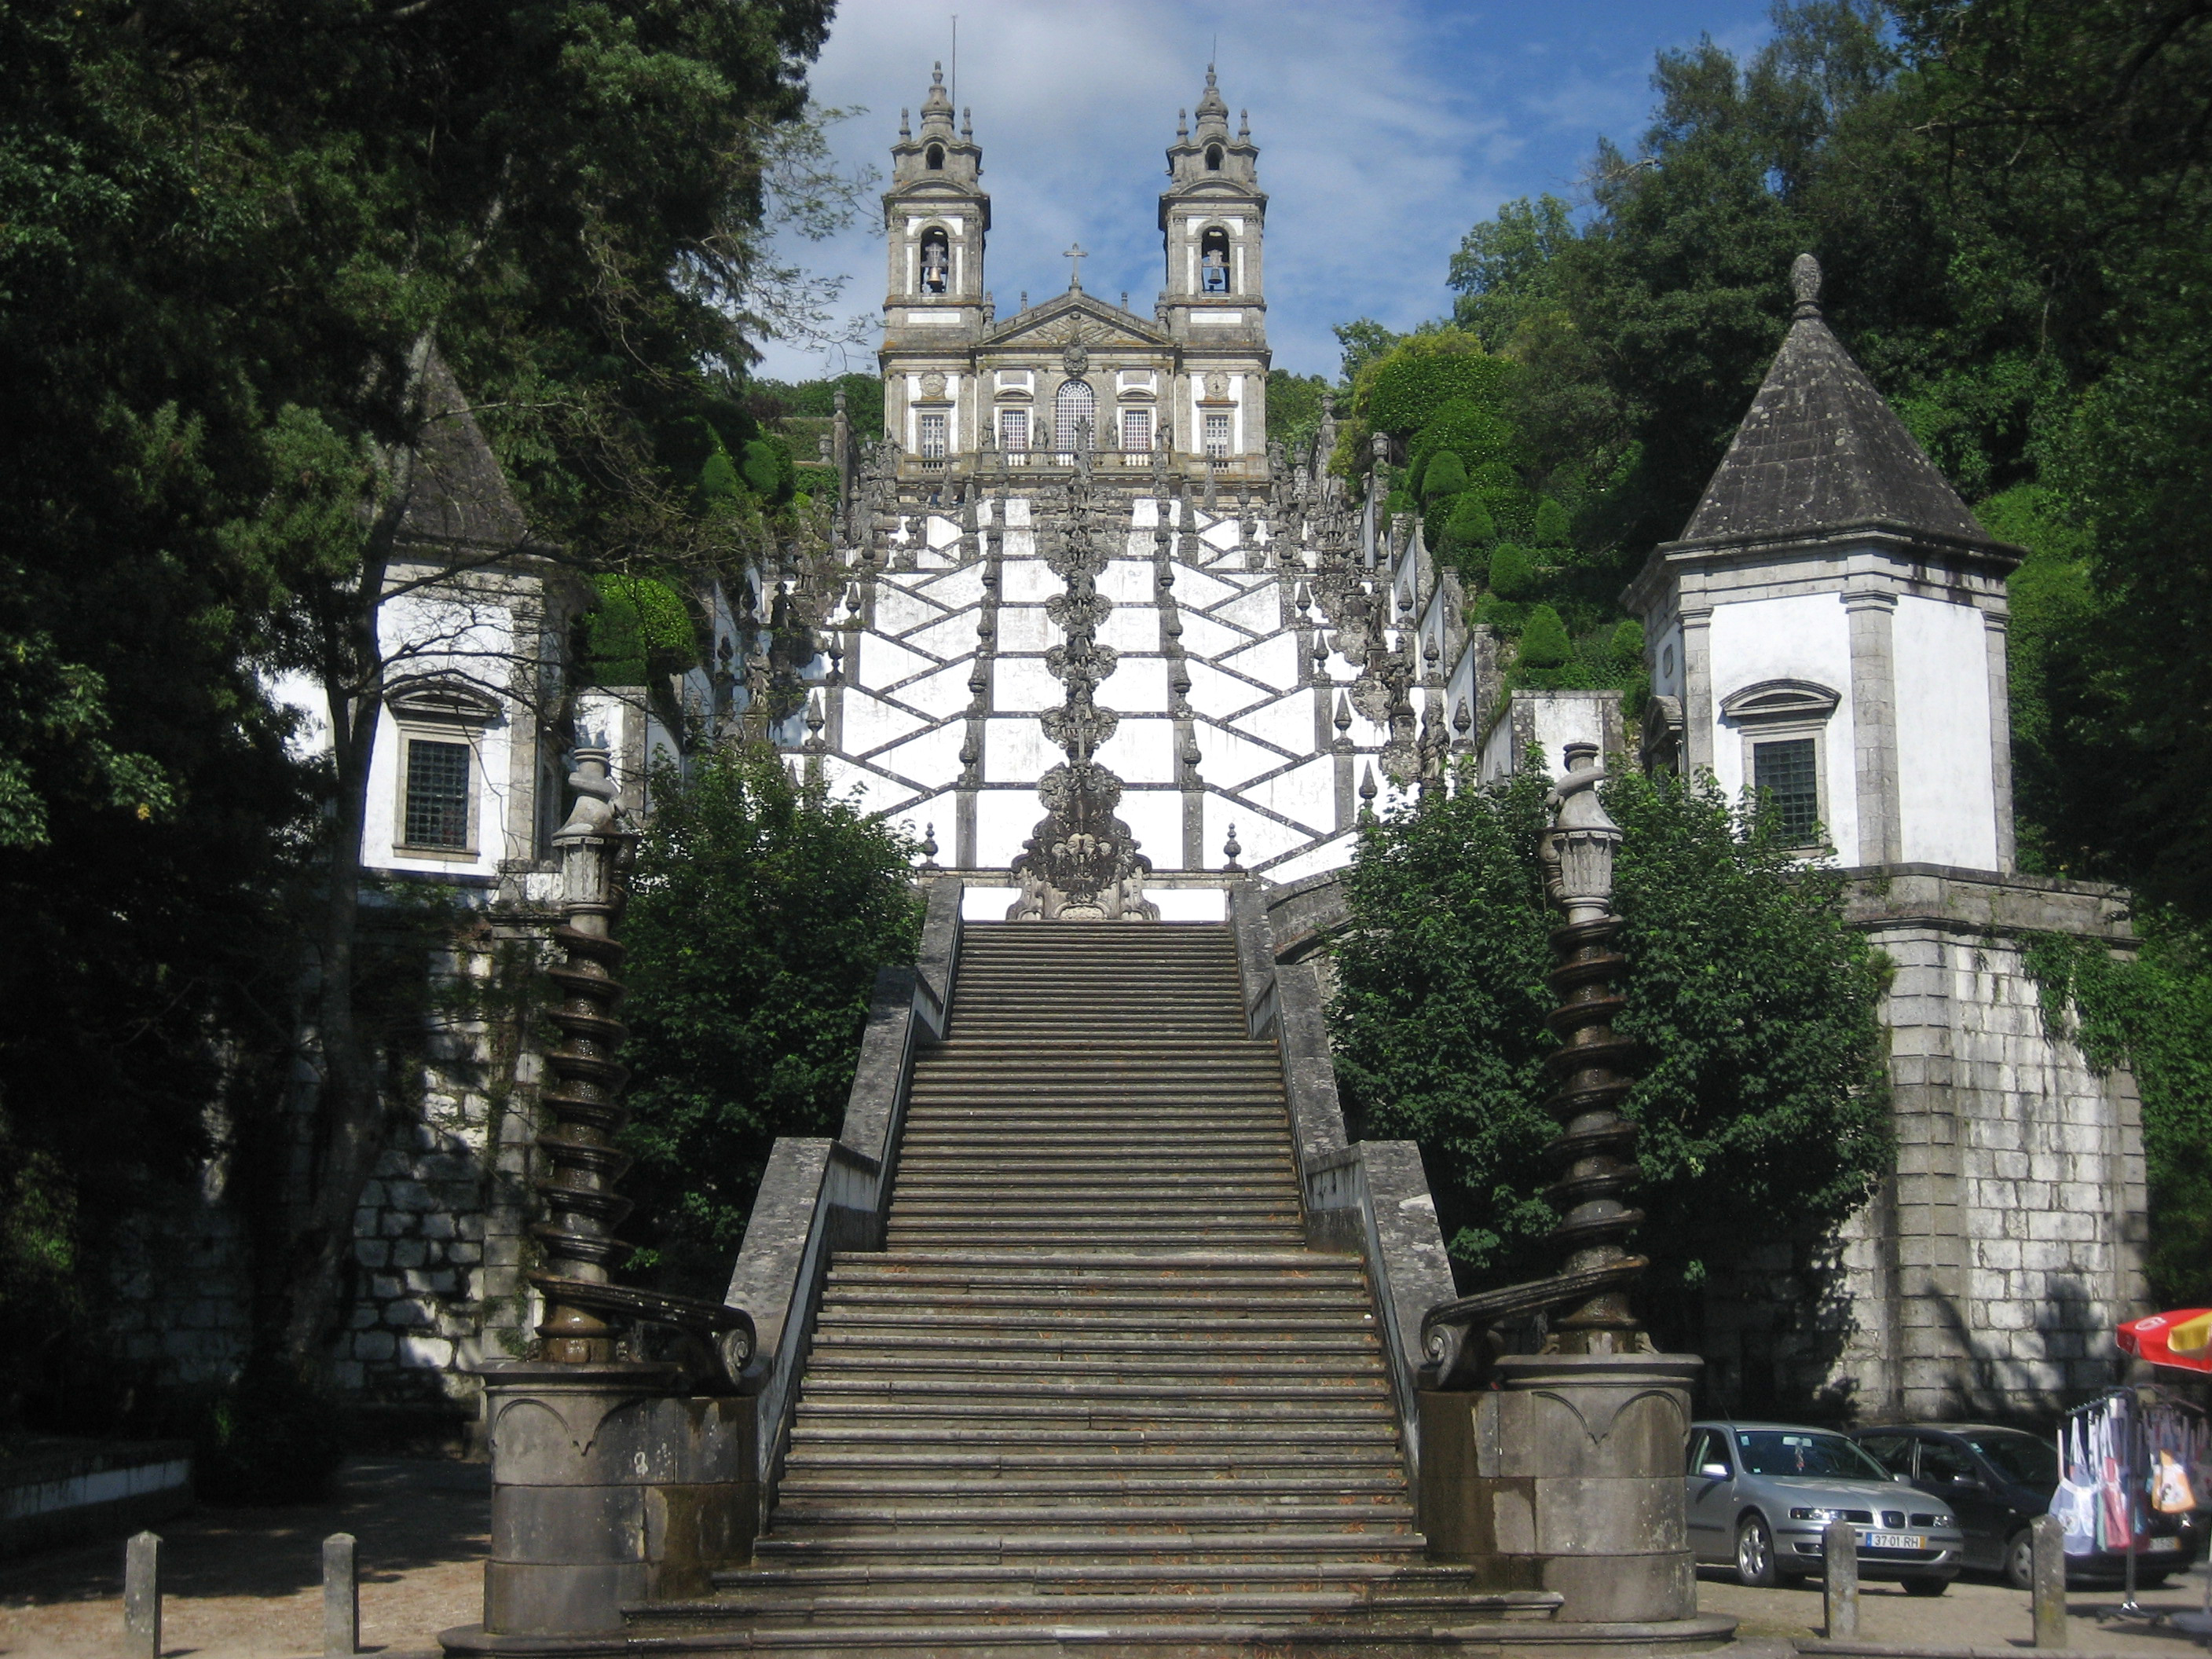 The Fountain of the Five Senses, Braga, Portugal | Human within the Architect | Prem Chandavarkar | STIR